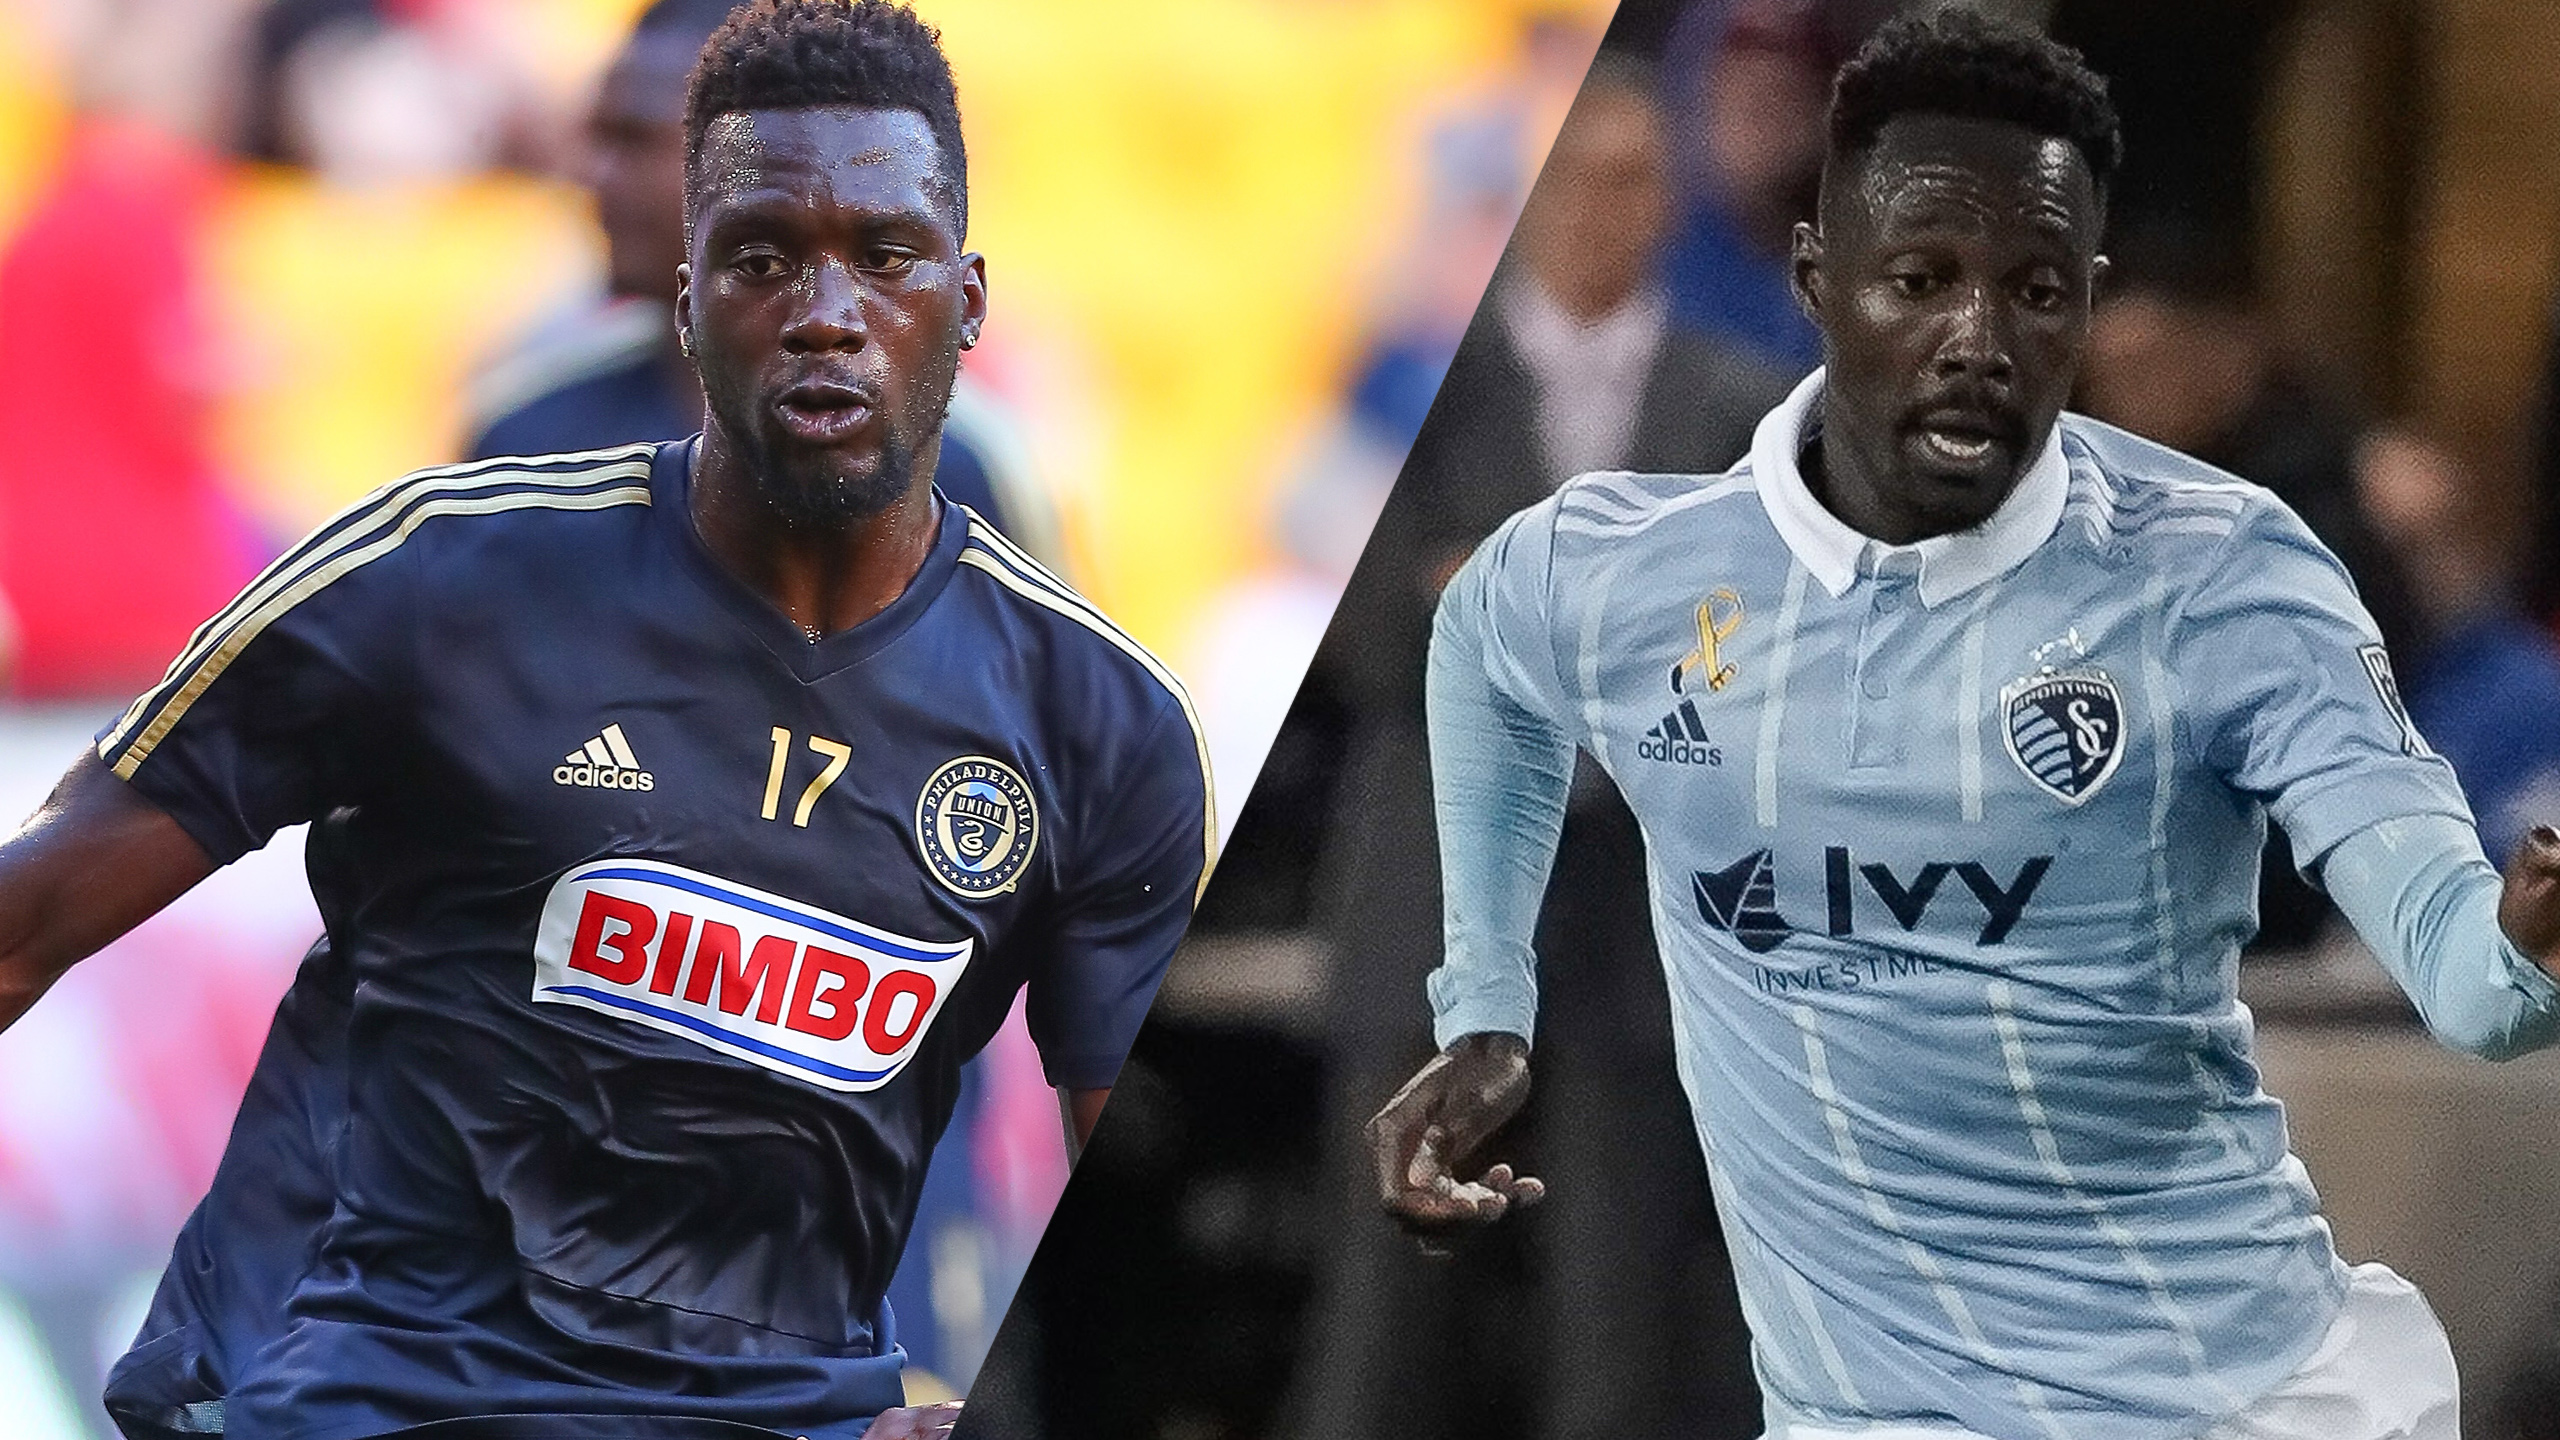 Philadelphia Union vs. Sporting Kansas City